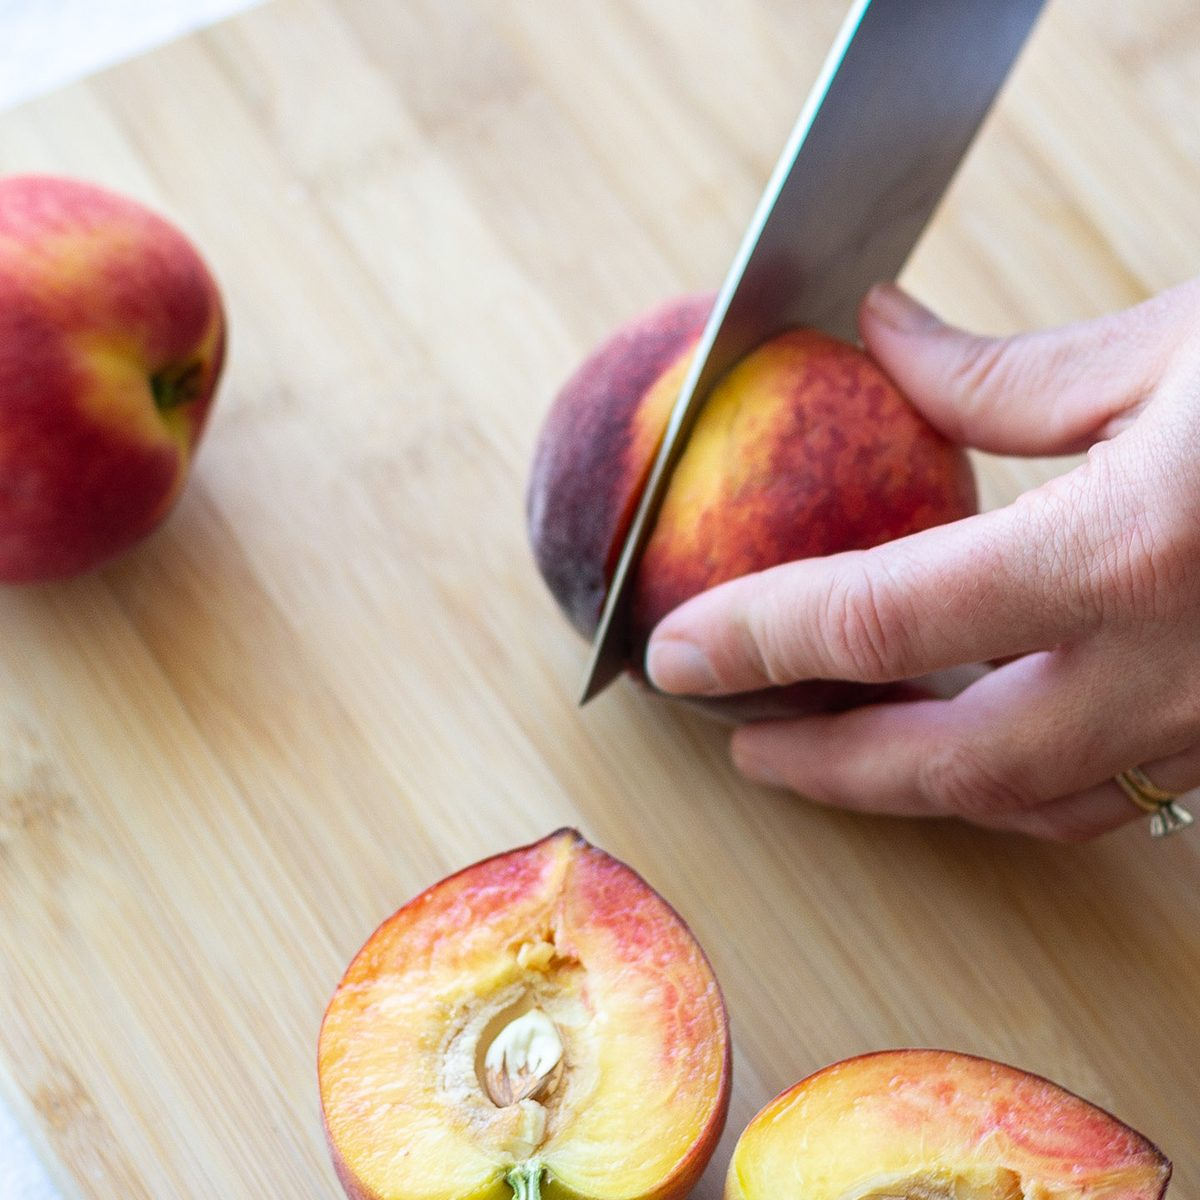 Slicing a whole peach in half on a cutting board with a cut peach nearby.